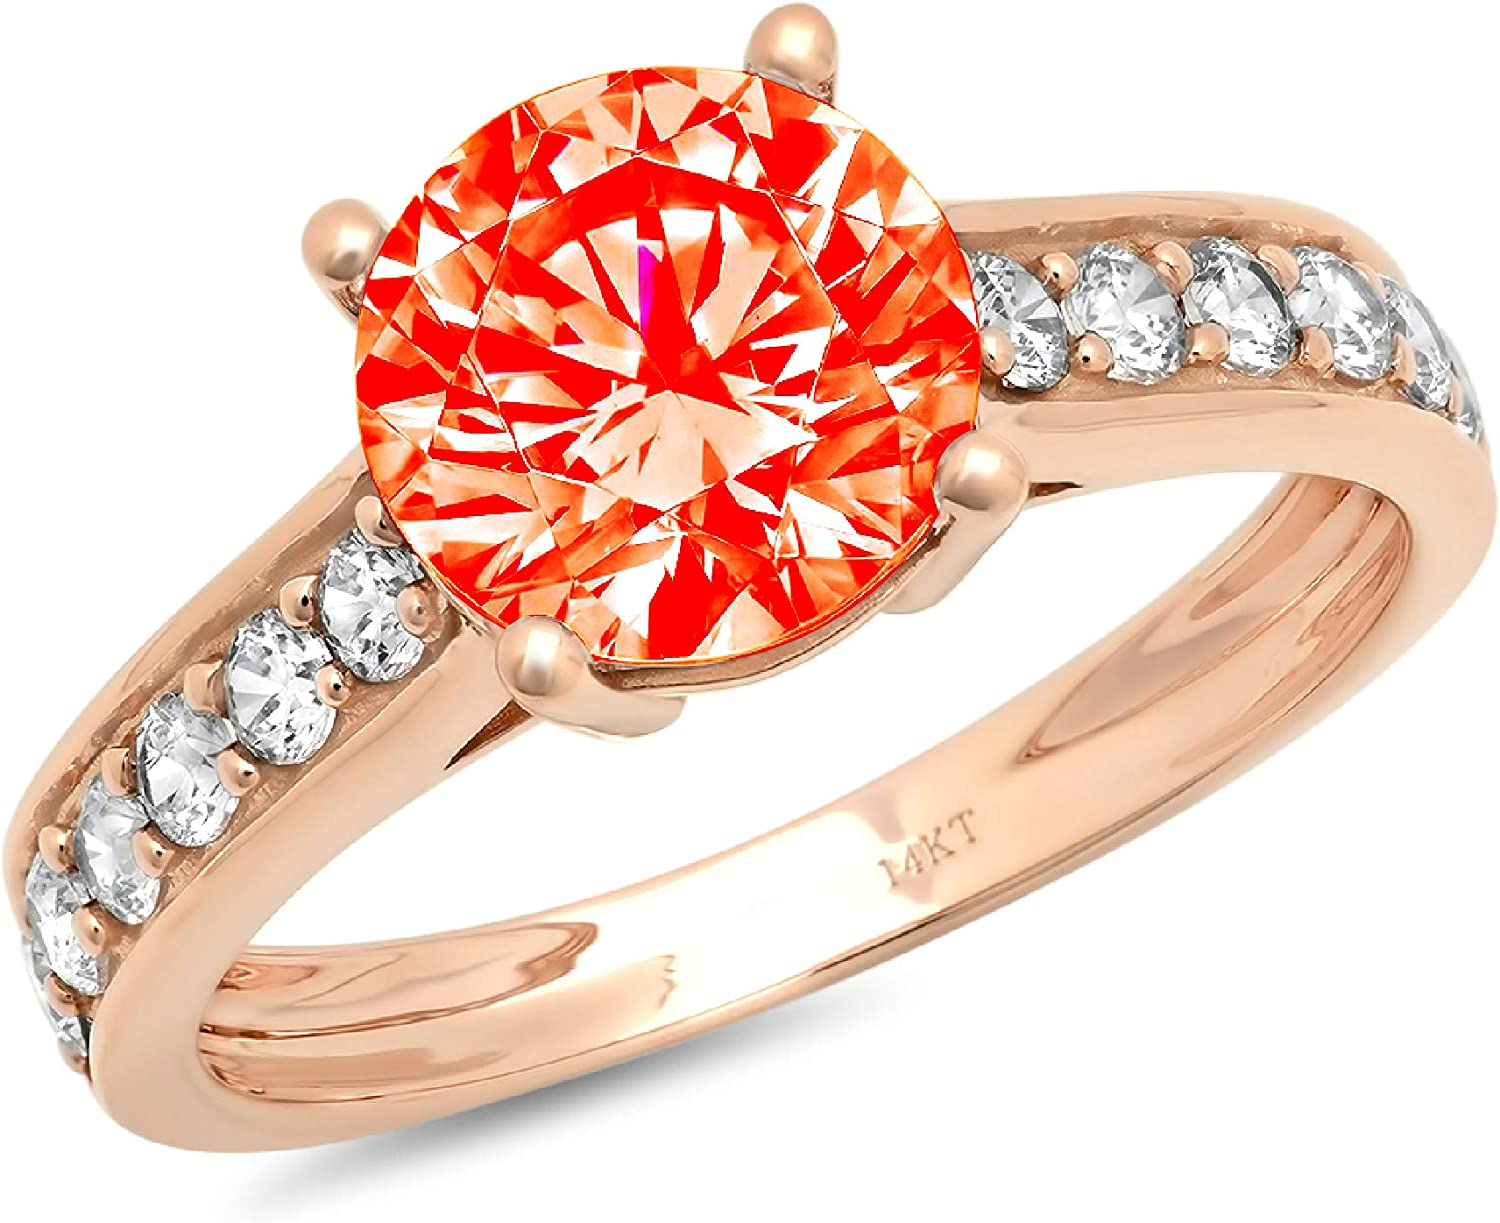 2.19ct Brilliant Round Cut Solitaire with accent Red Ideal VVS1 Simulated Diamond CZ Engagement Promise Statement Anniversary Bridal Wedding Accent Ring 14k Rose Gold